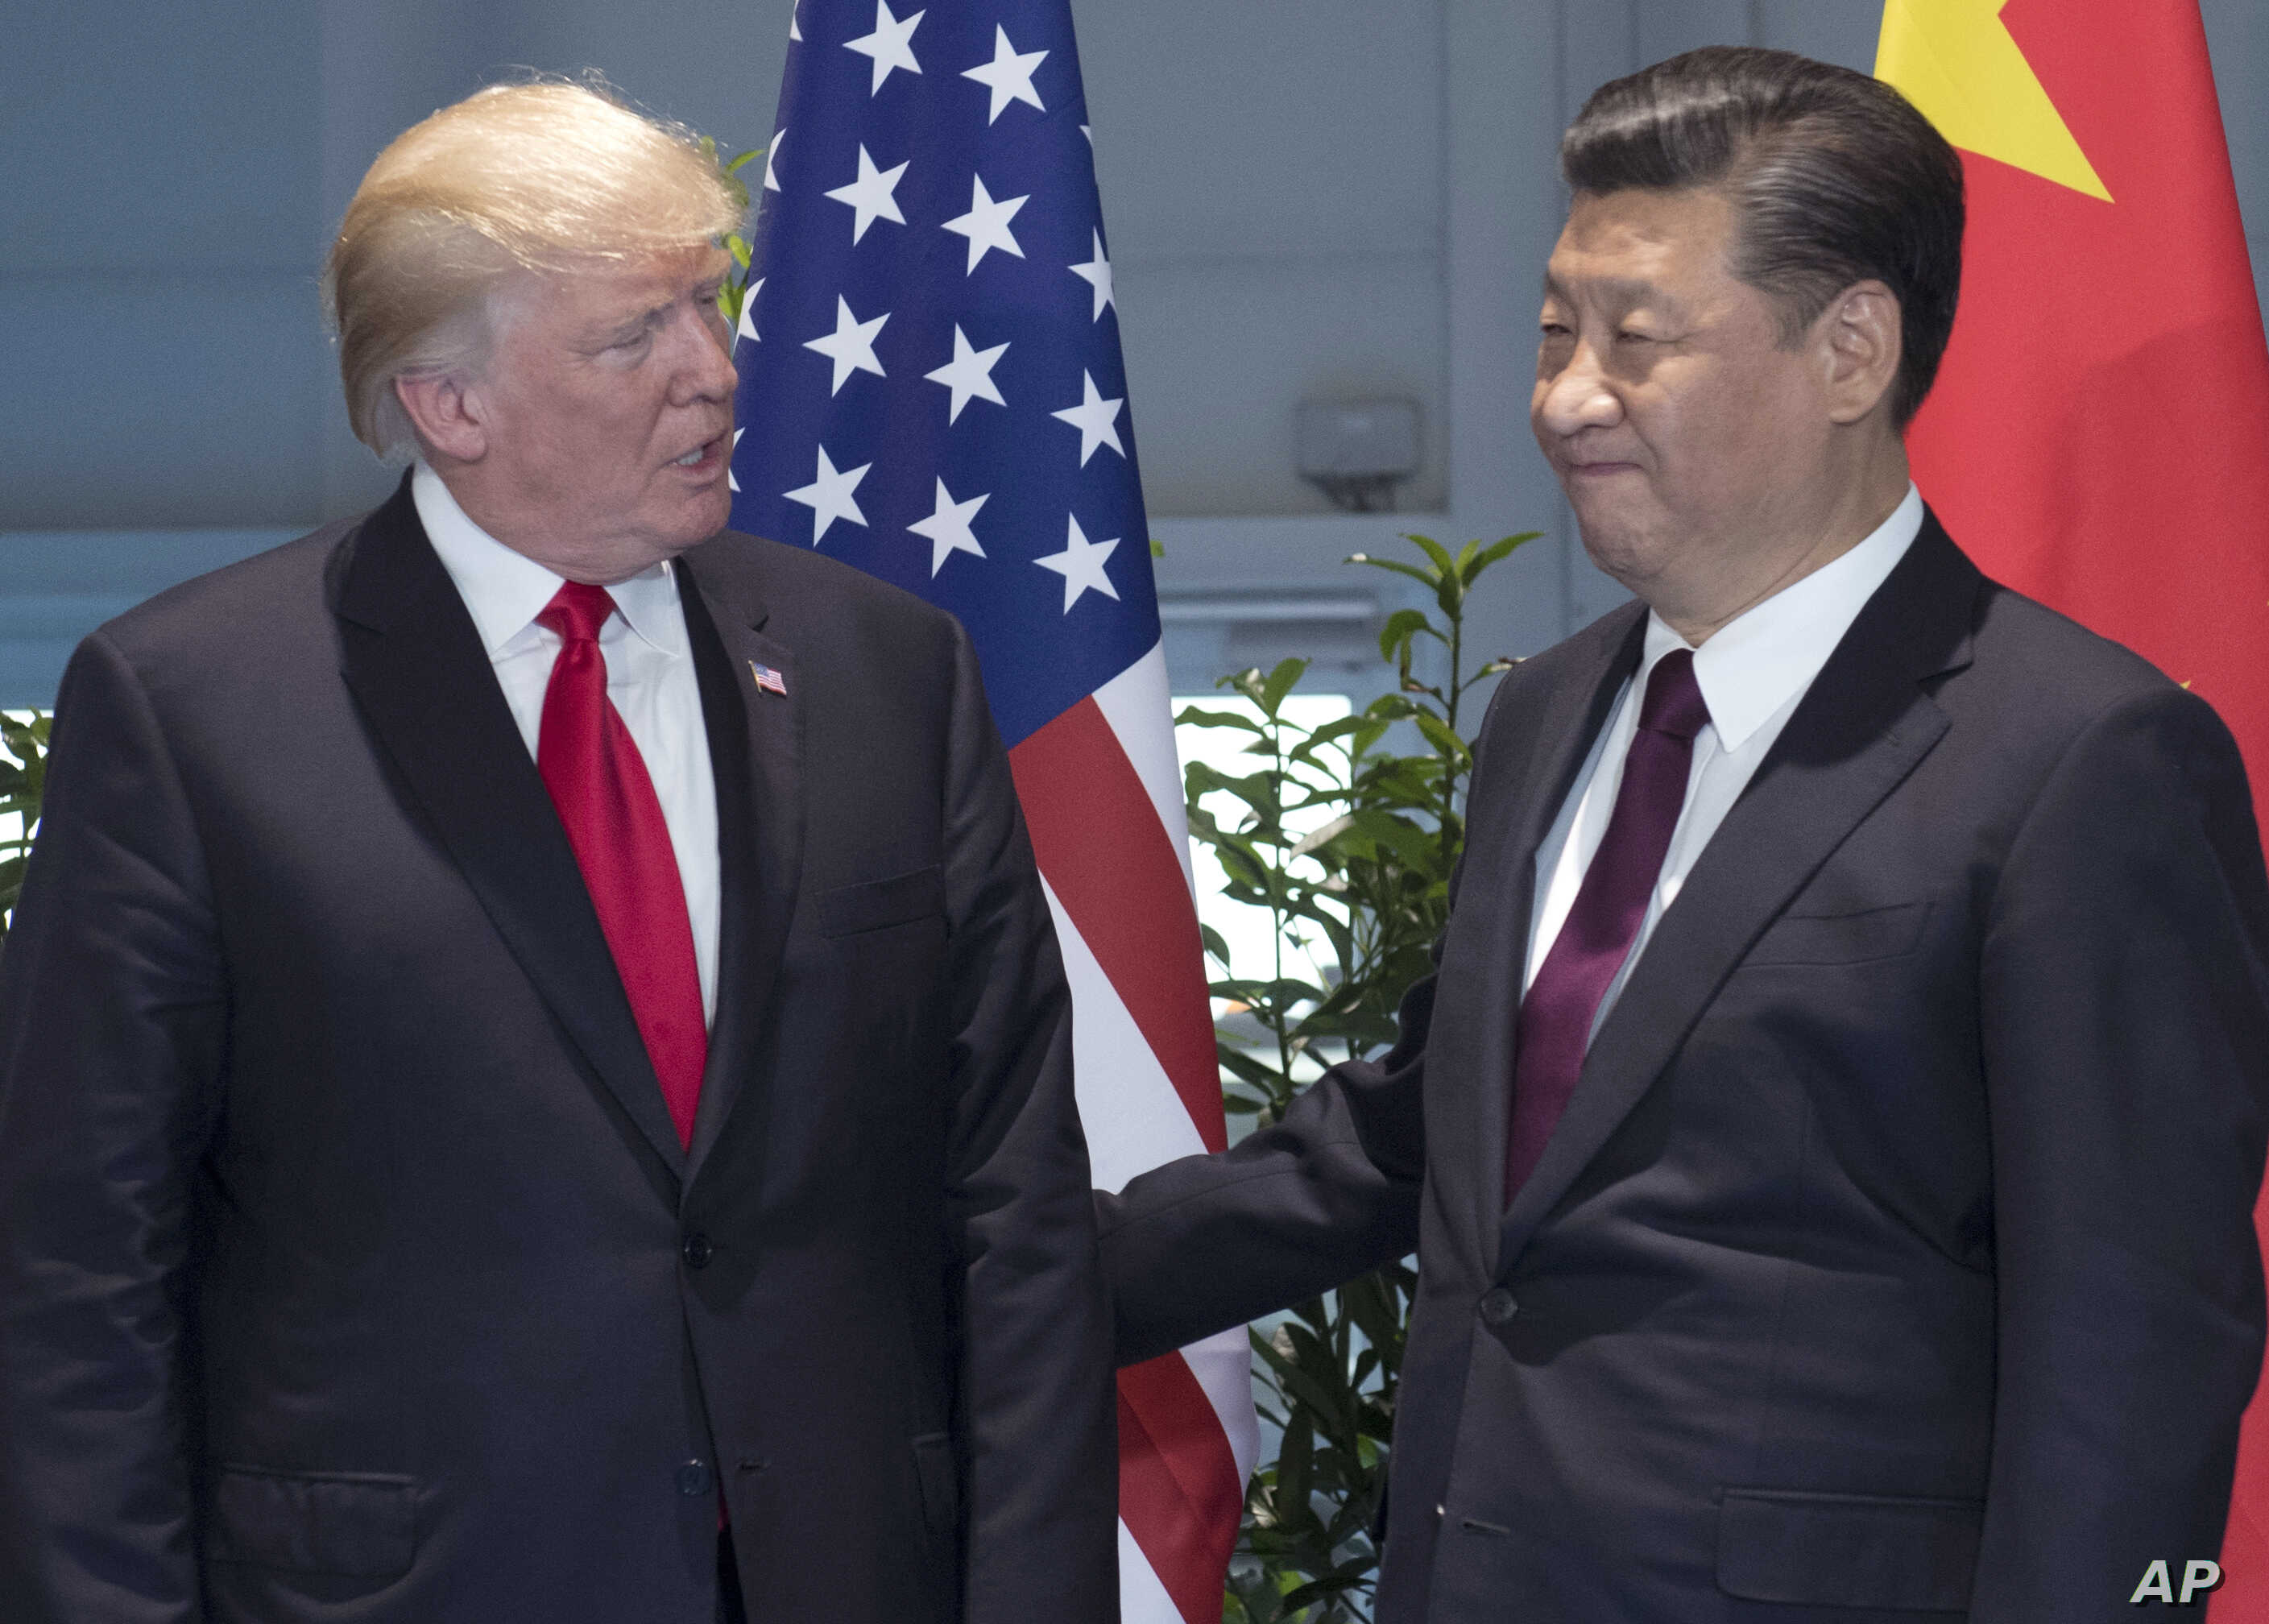 FILE - , U.S. President Donald Trump, left, and Chinese President Xi Jinping arrive for a meeting on the sidelines of the G-20 Summit in Hamburg, Germany.